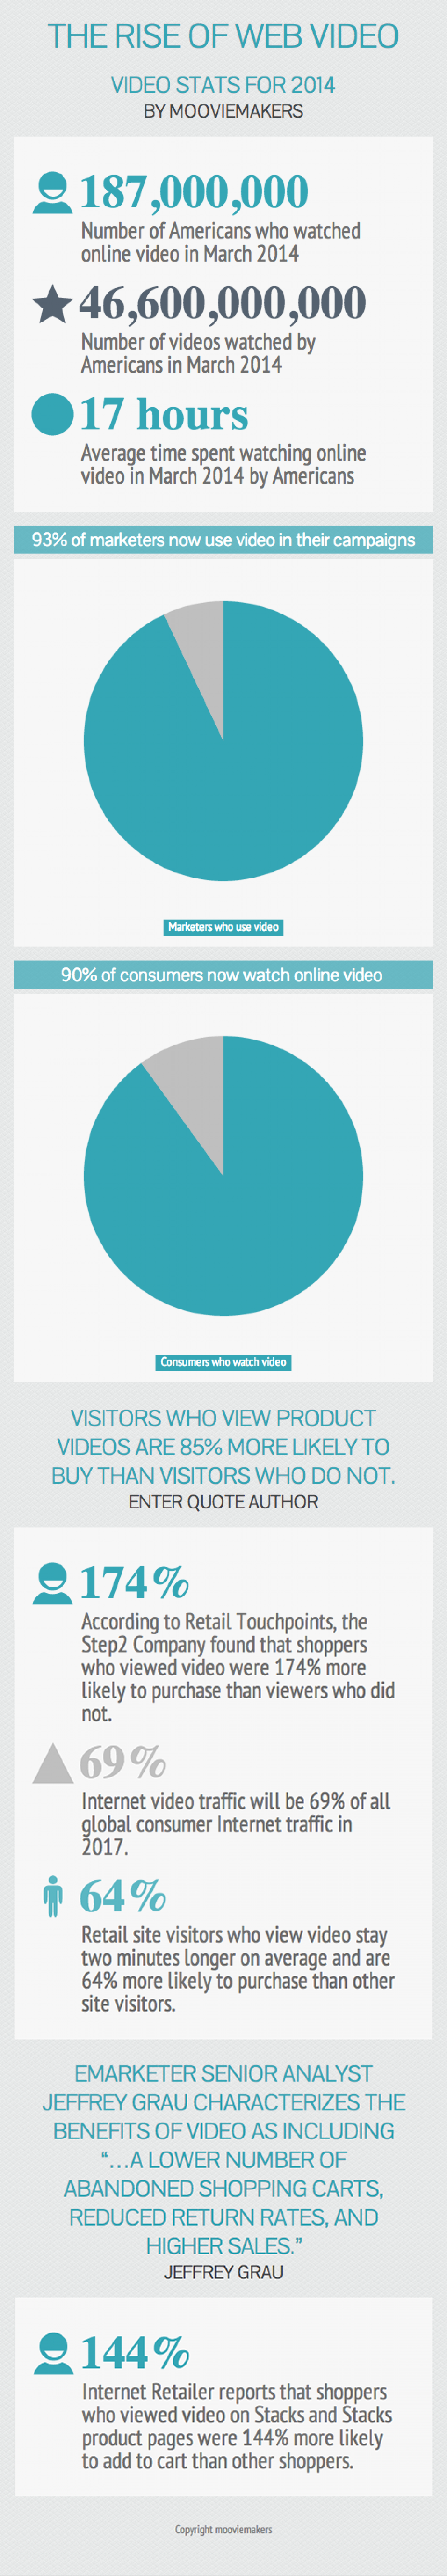 The rise of online video in 2014 Infographic